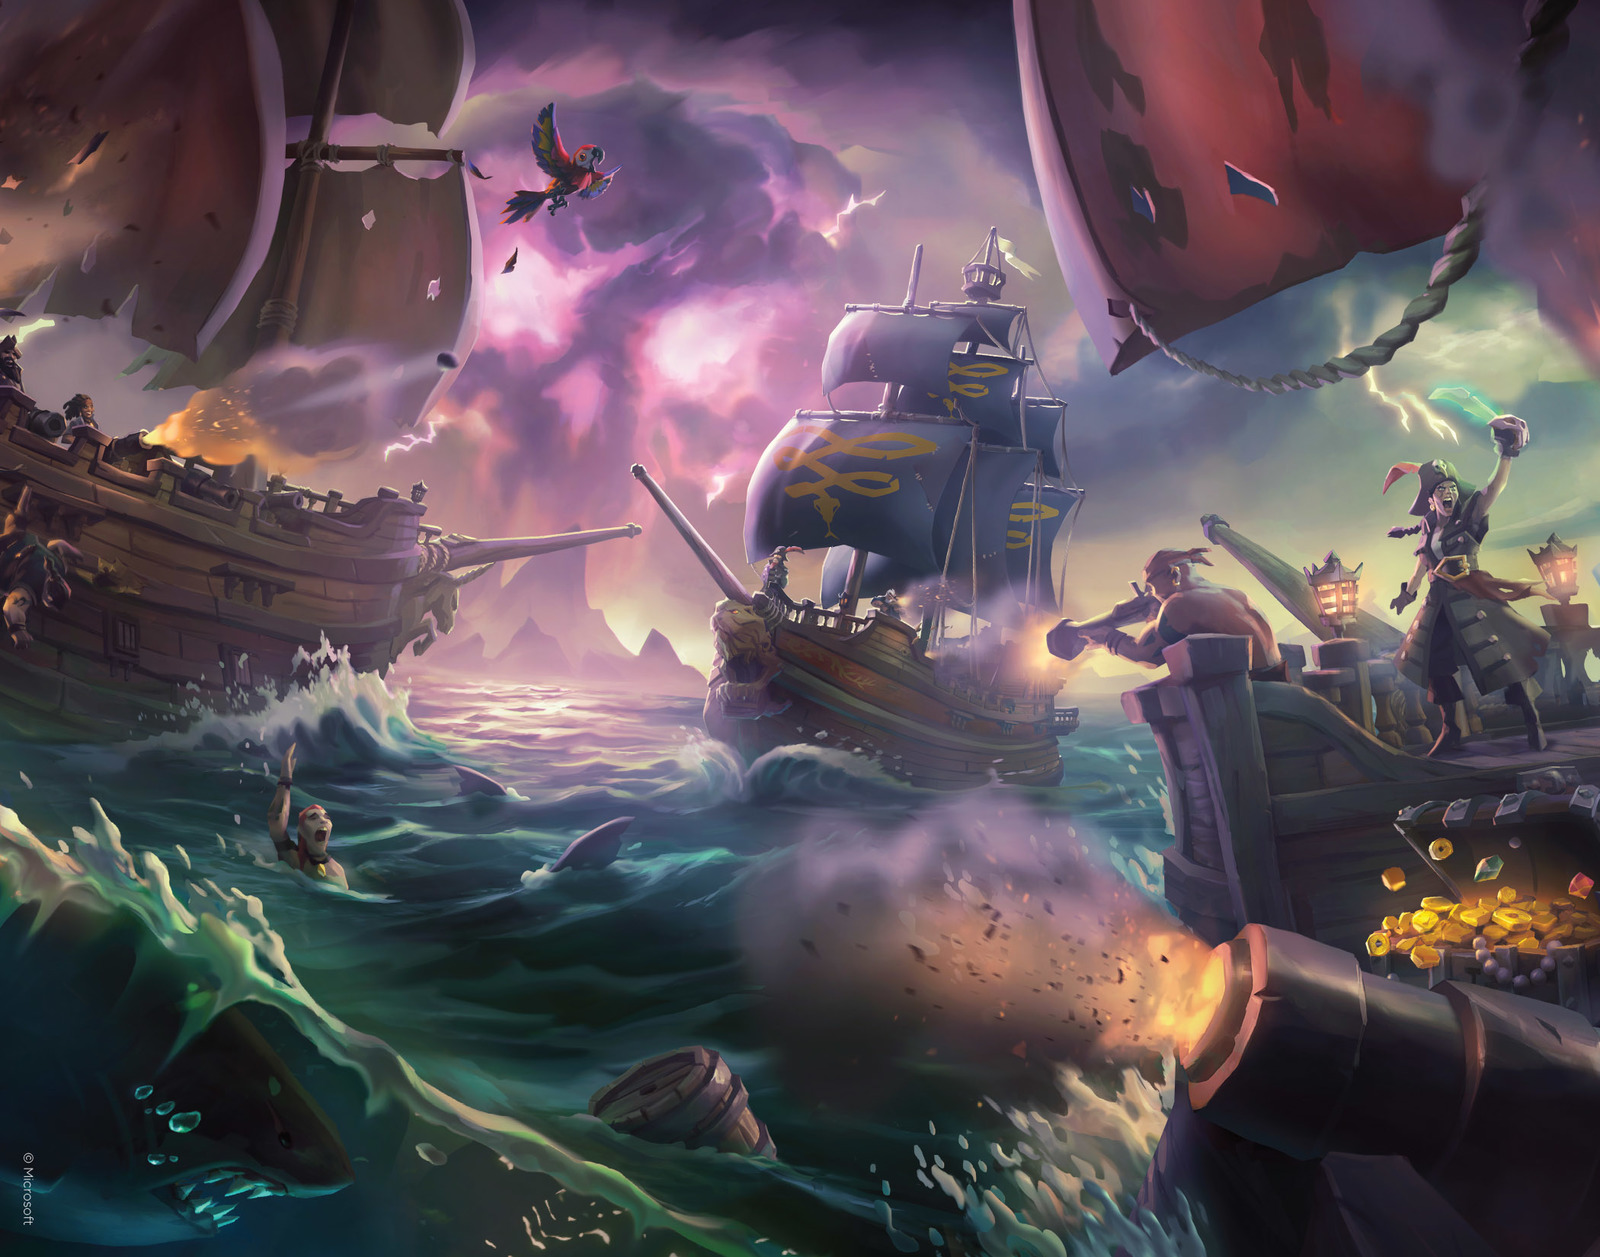 Sea of Thieves - Premium Art Print - Battles at Sea image